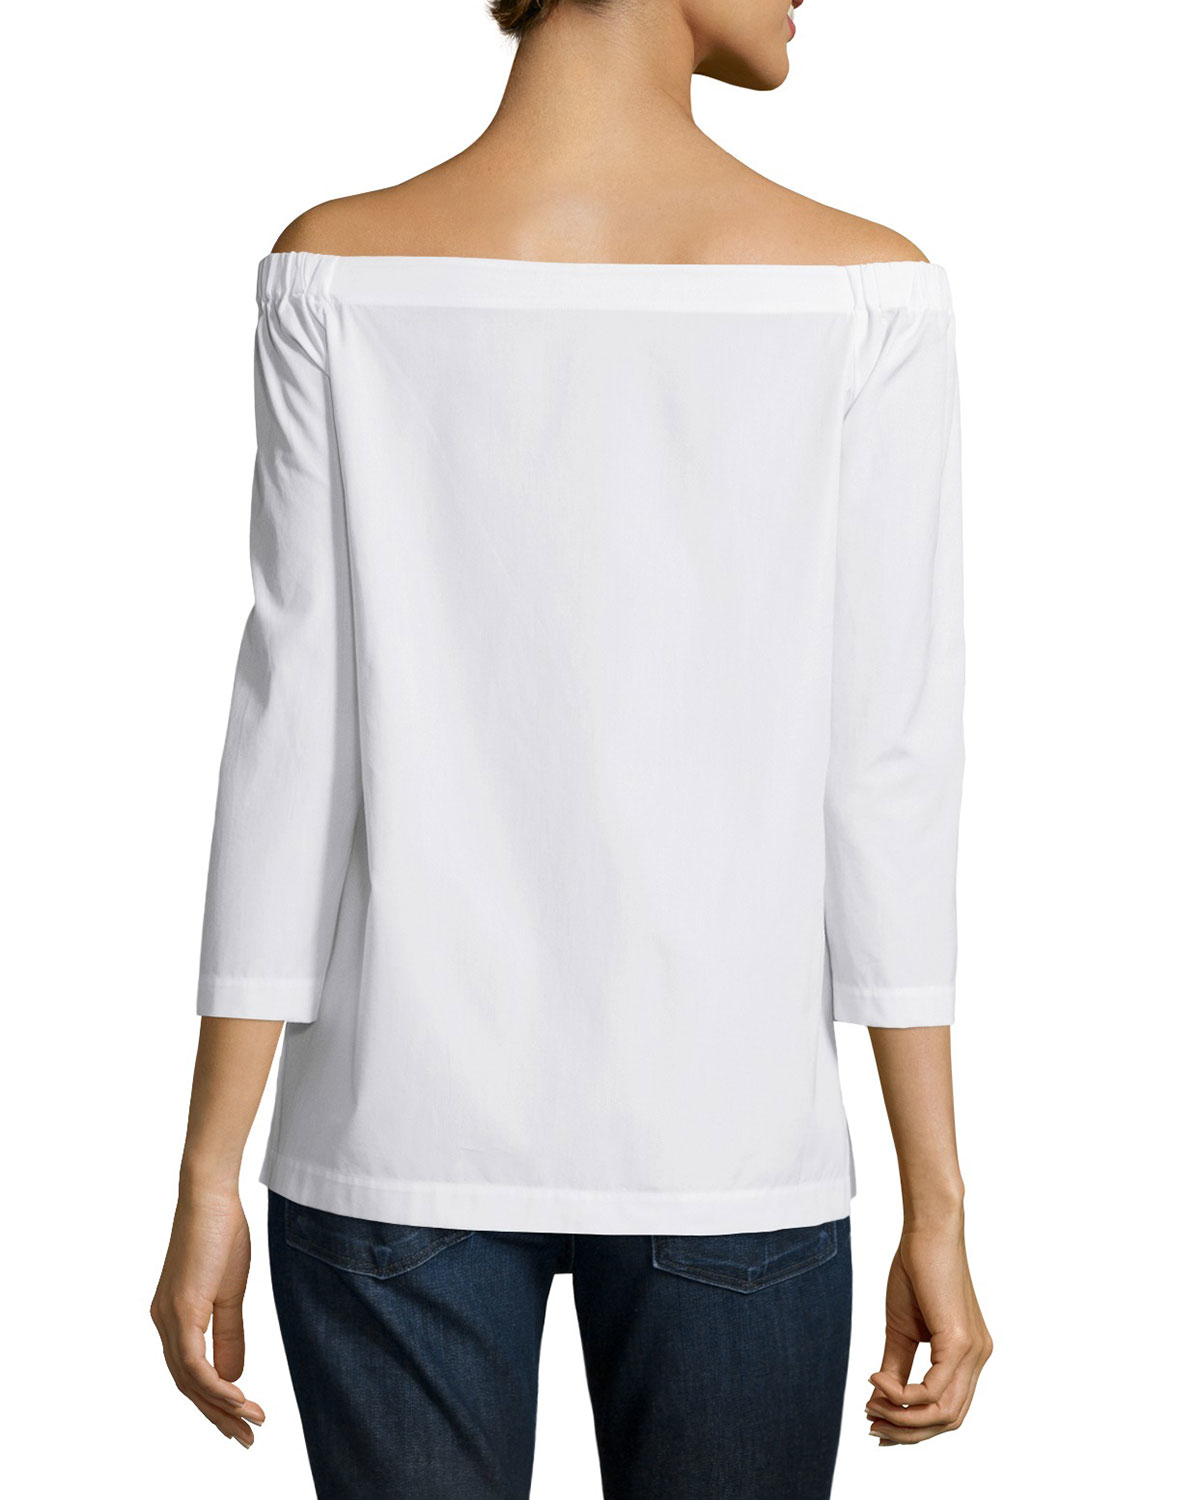 fbbbcc37949776 Theory Vinata Sartorial Off-the-shoulder Top in White - Lyst